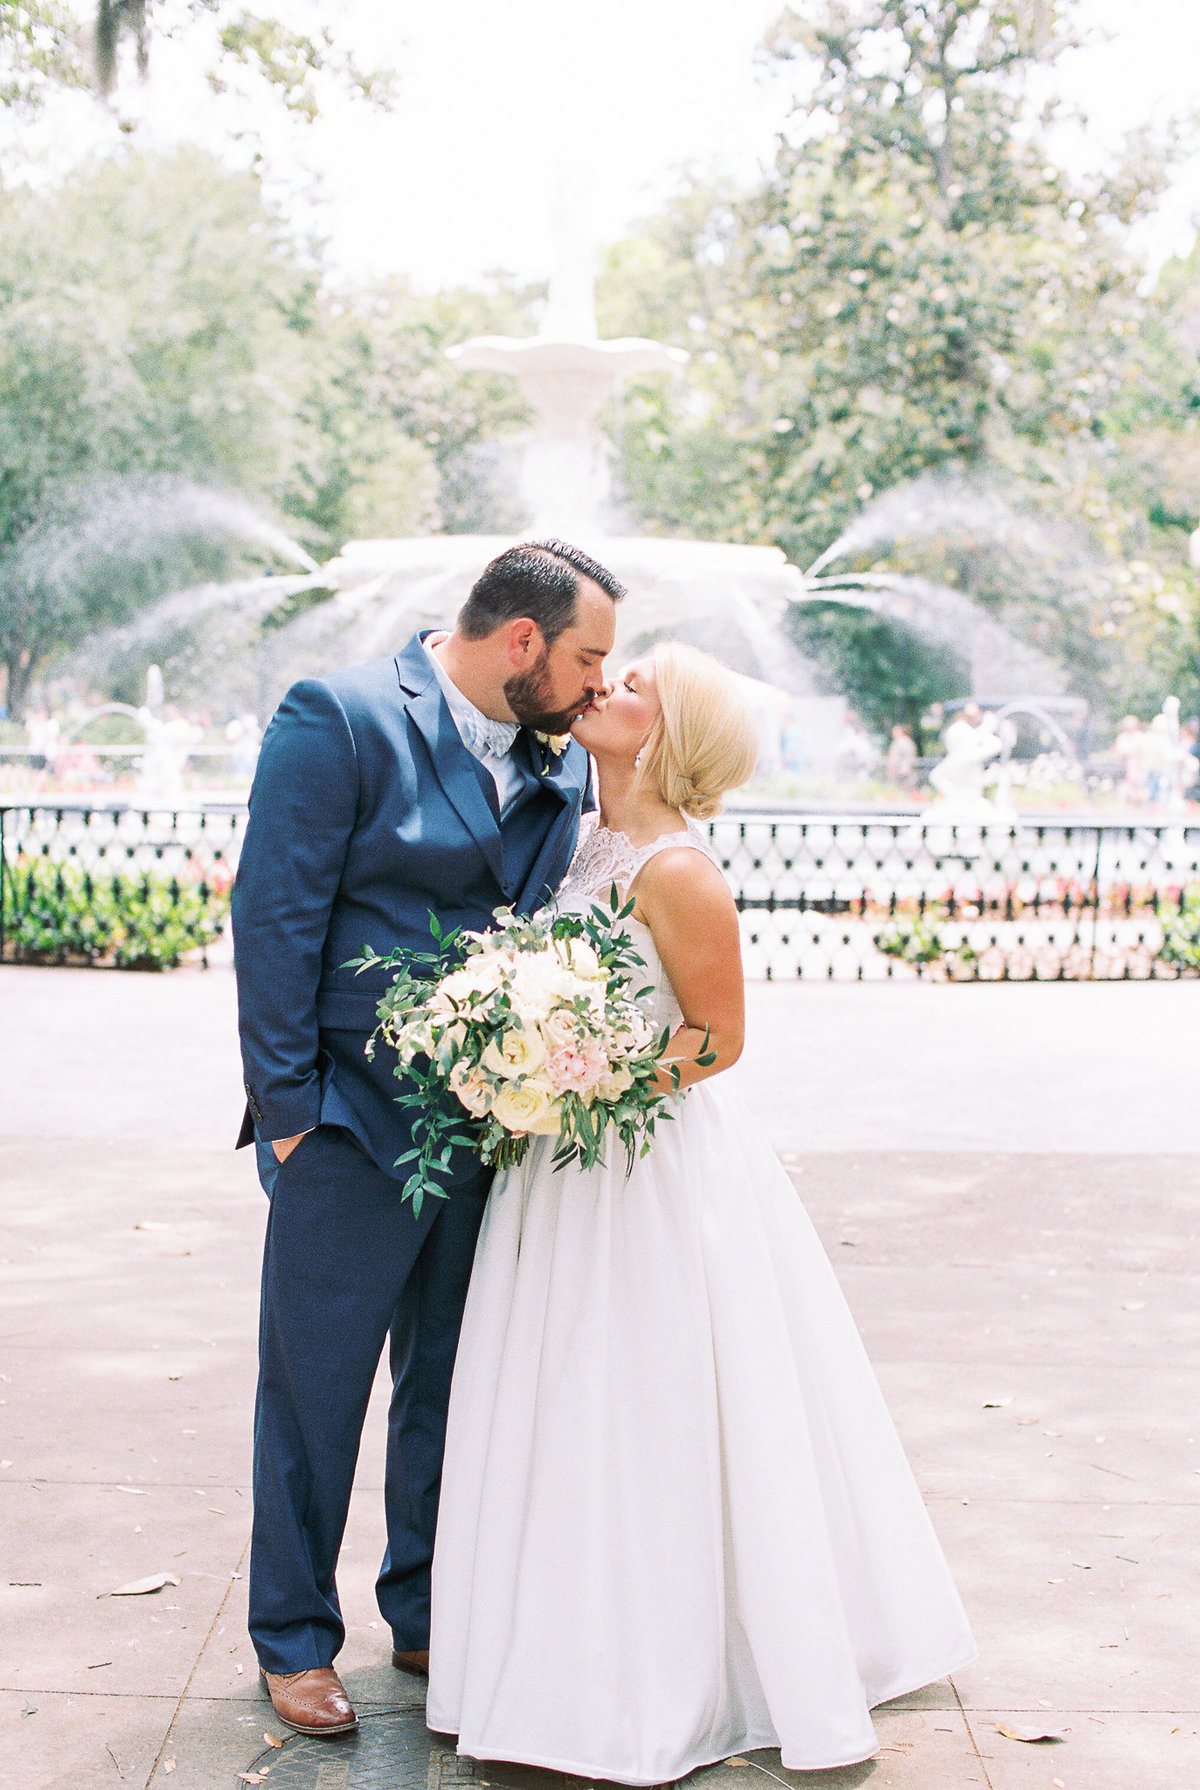 Savannah-Georgia-Wedding-Photographer-Holly-Felts-Photography-Wilmon-Wedding-126